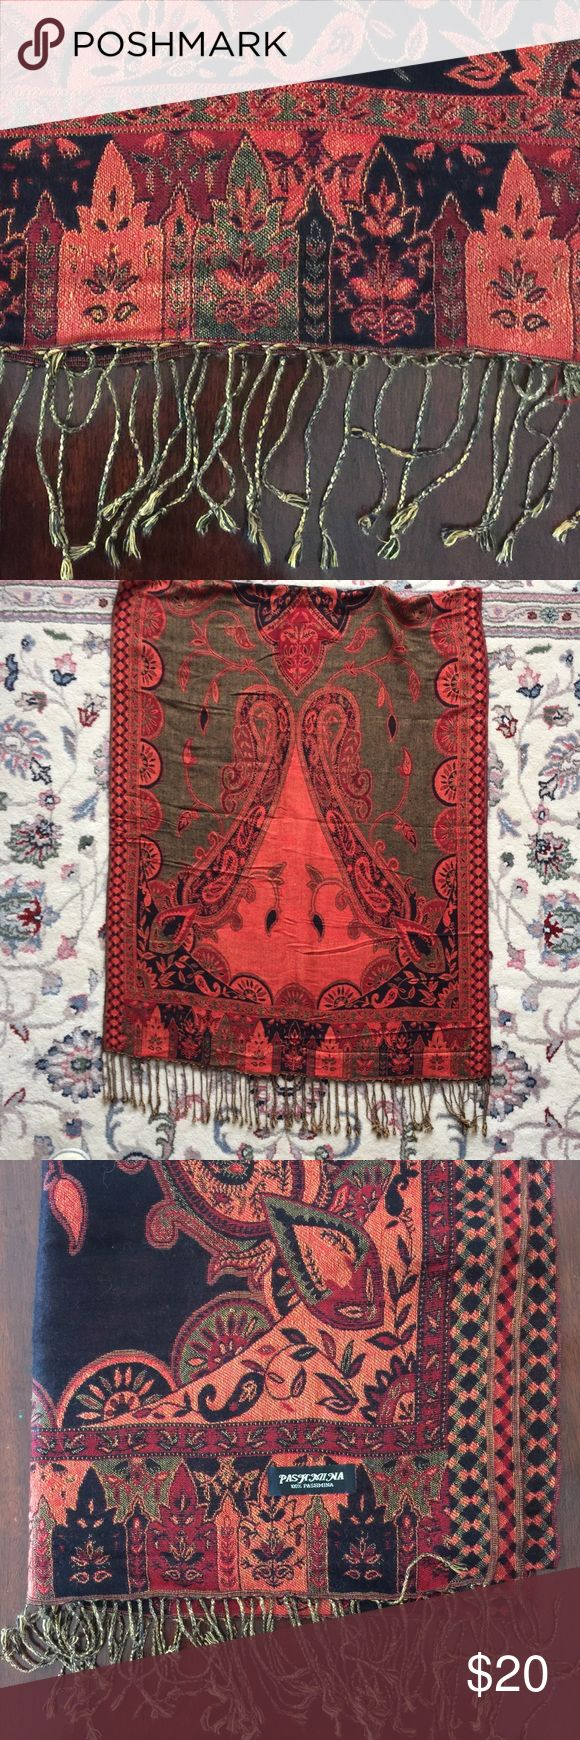 """Large Cashmere Pashmina Shawl 28"""" by 80"""" 100% pashmina. Made of cashmere. Very soft. Excellent condition, only used once. Accessories Scarves & Wraps"""